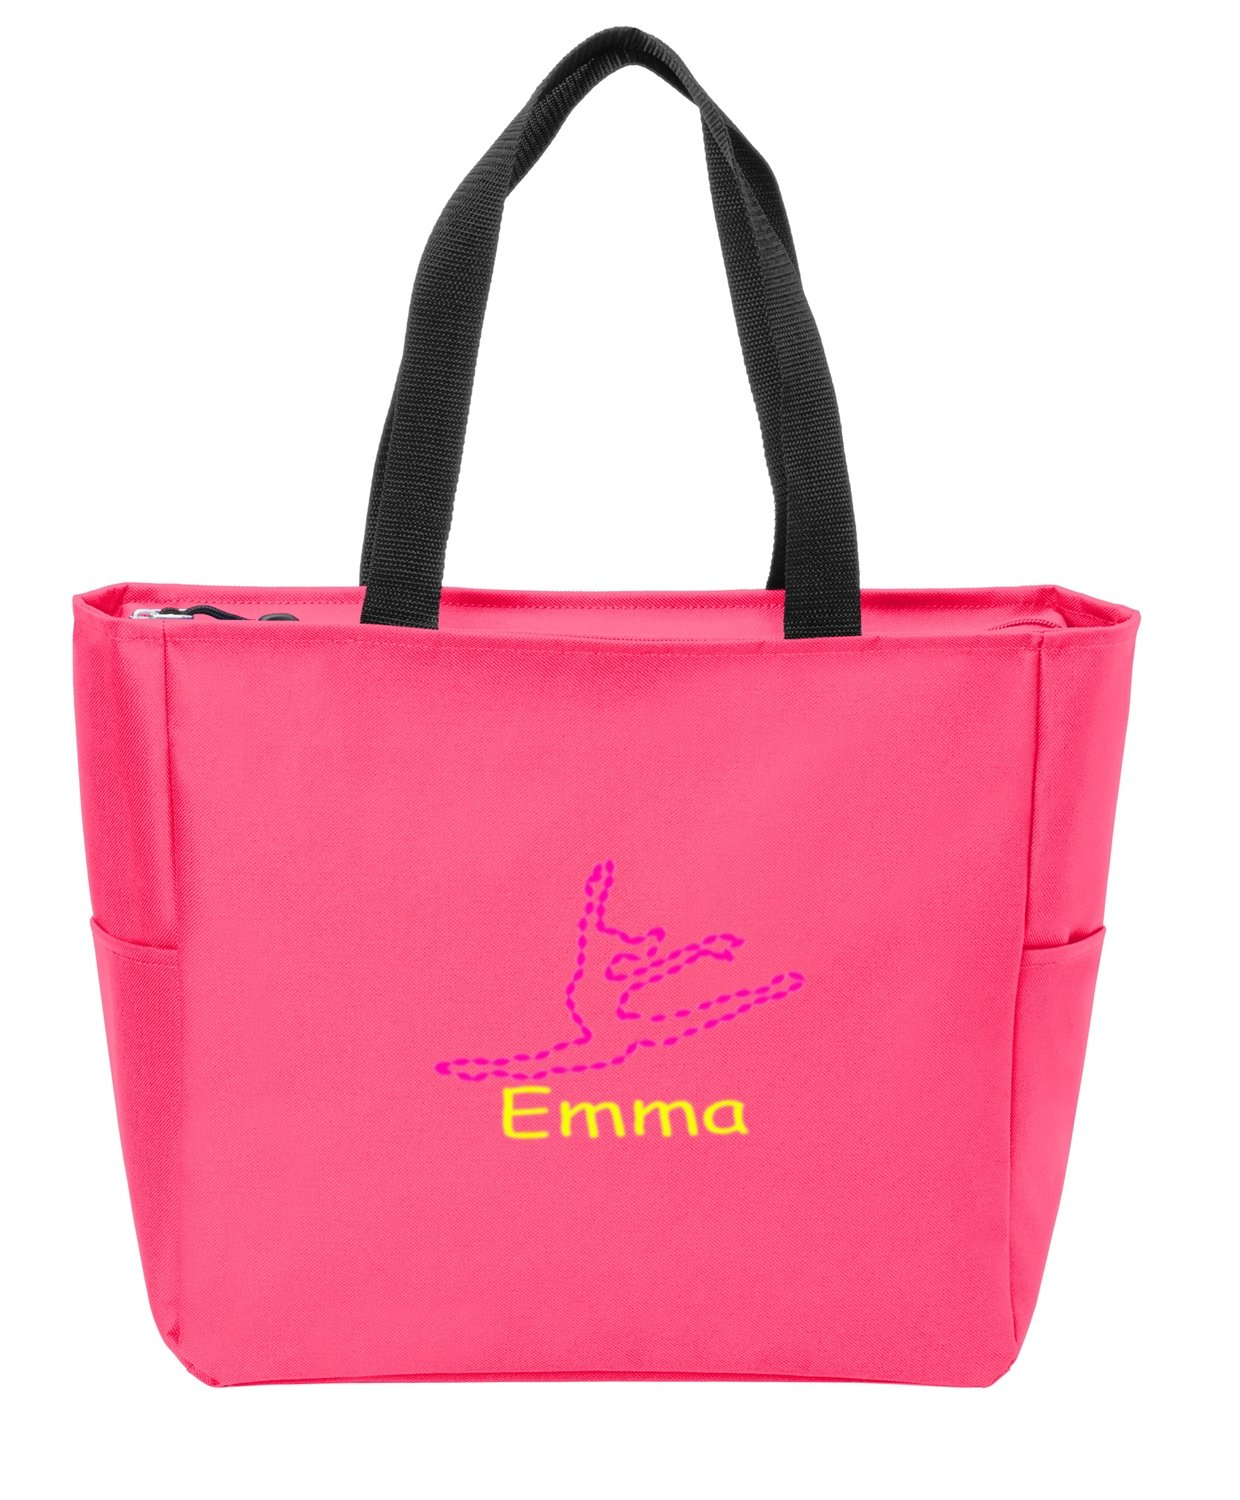 all about me company Essential Zip Tote | Personalized Dance Shoulder Bag (Neon Pink) by all about me company